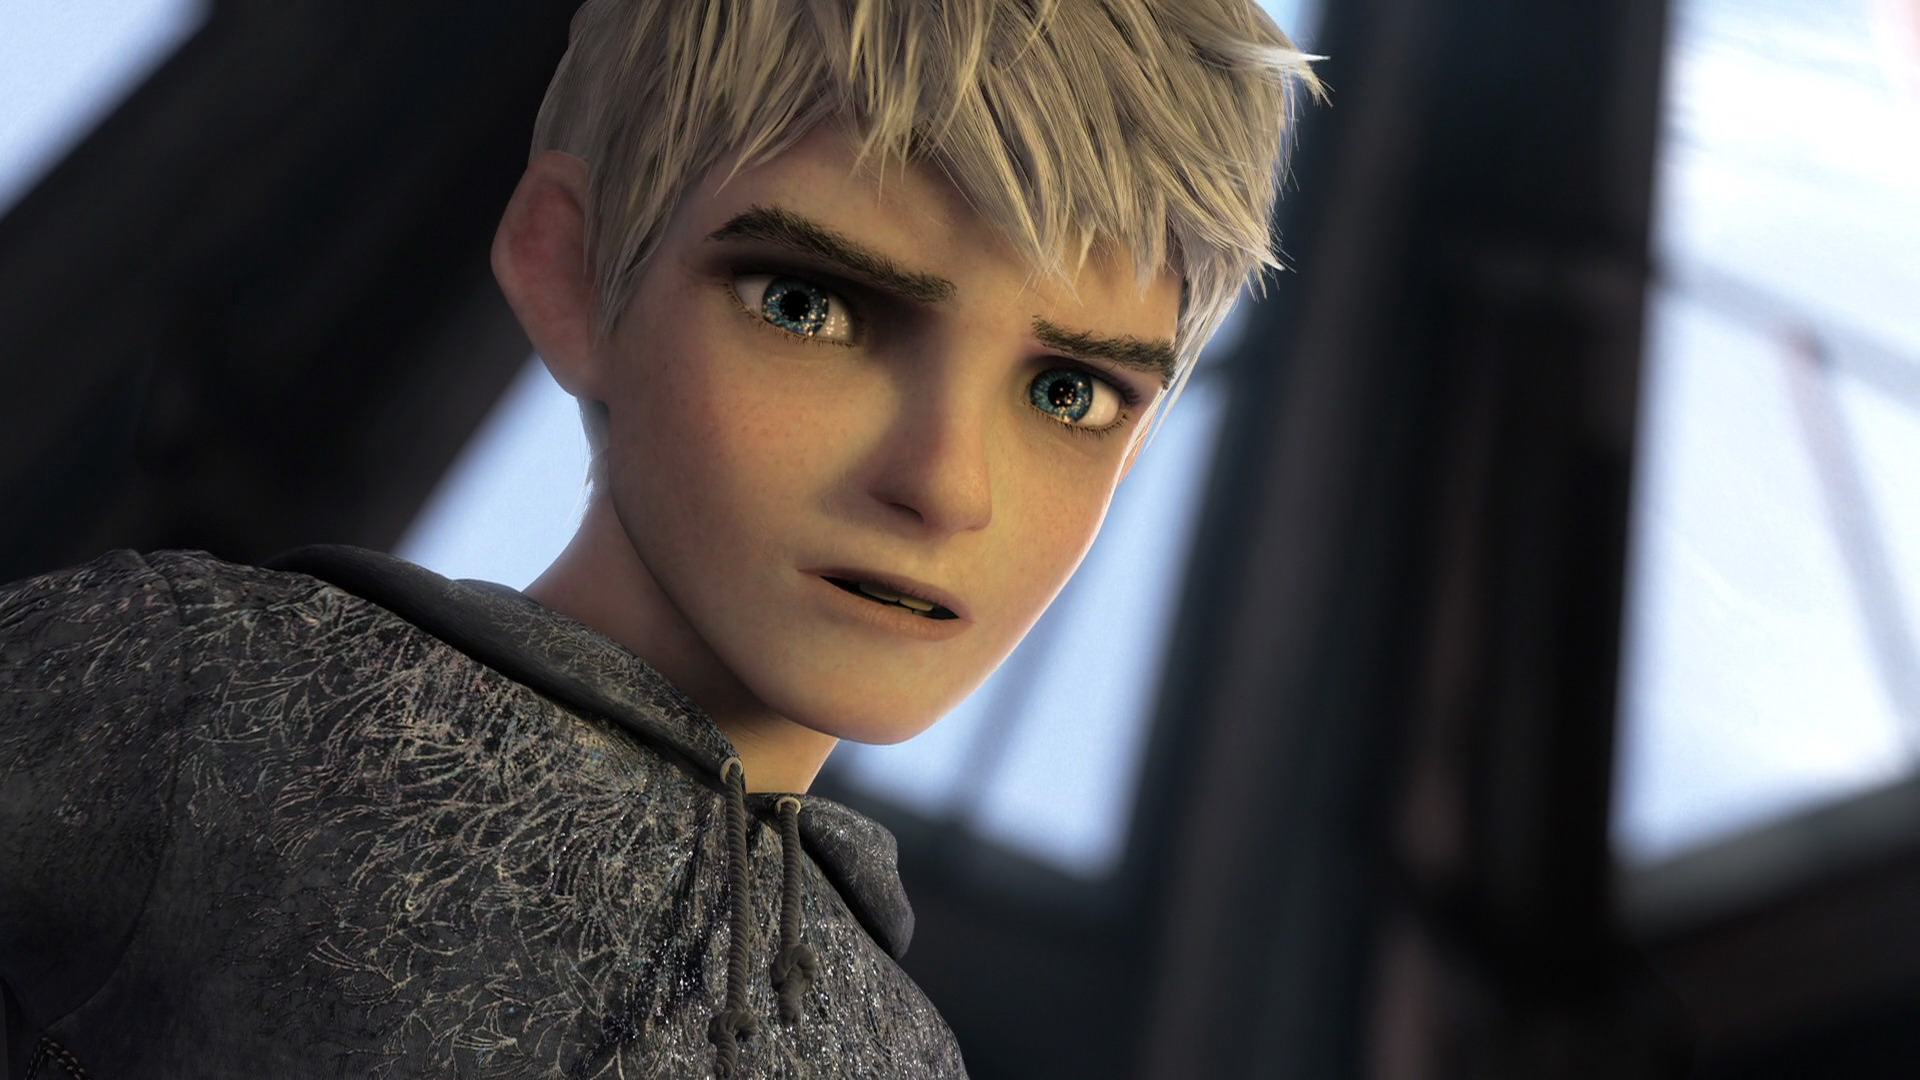 jack frost Jack frost edit jack frost is a 1997 film made by michael cooney the plot takes place in the fictional town of snowmonton, where a truck containing a notorious serial killer named jack frost being sent to a facility to be executed crashes into a truck containing genetic material.